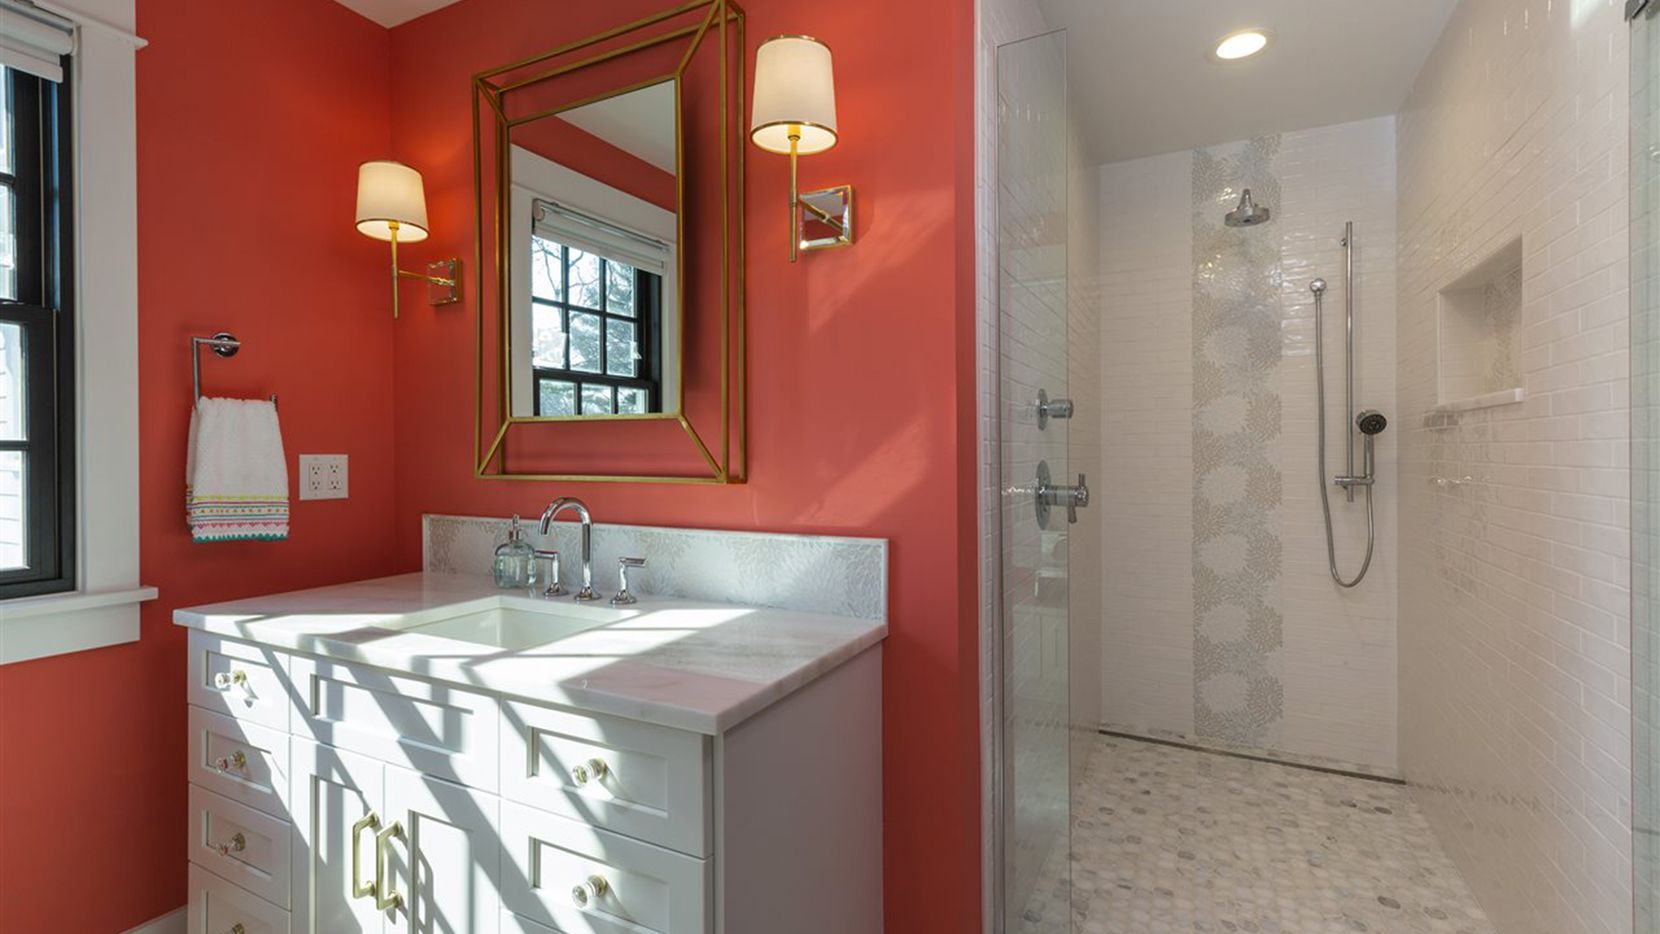 Modern bathrooms can be fitted with towel warmers and heated floors, among other features.